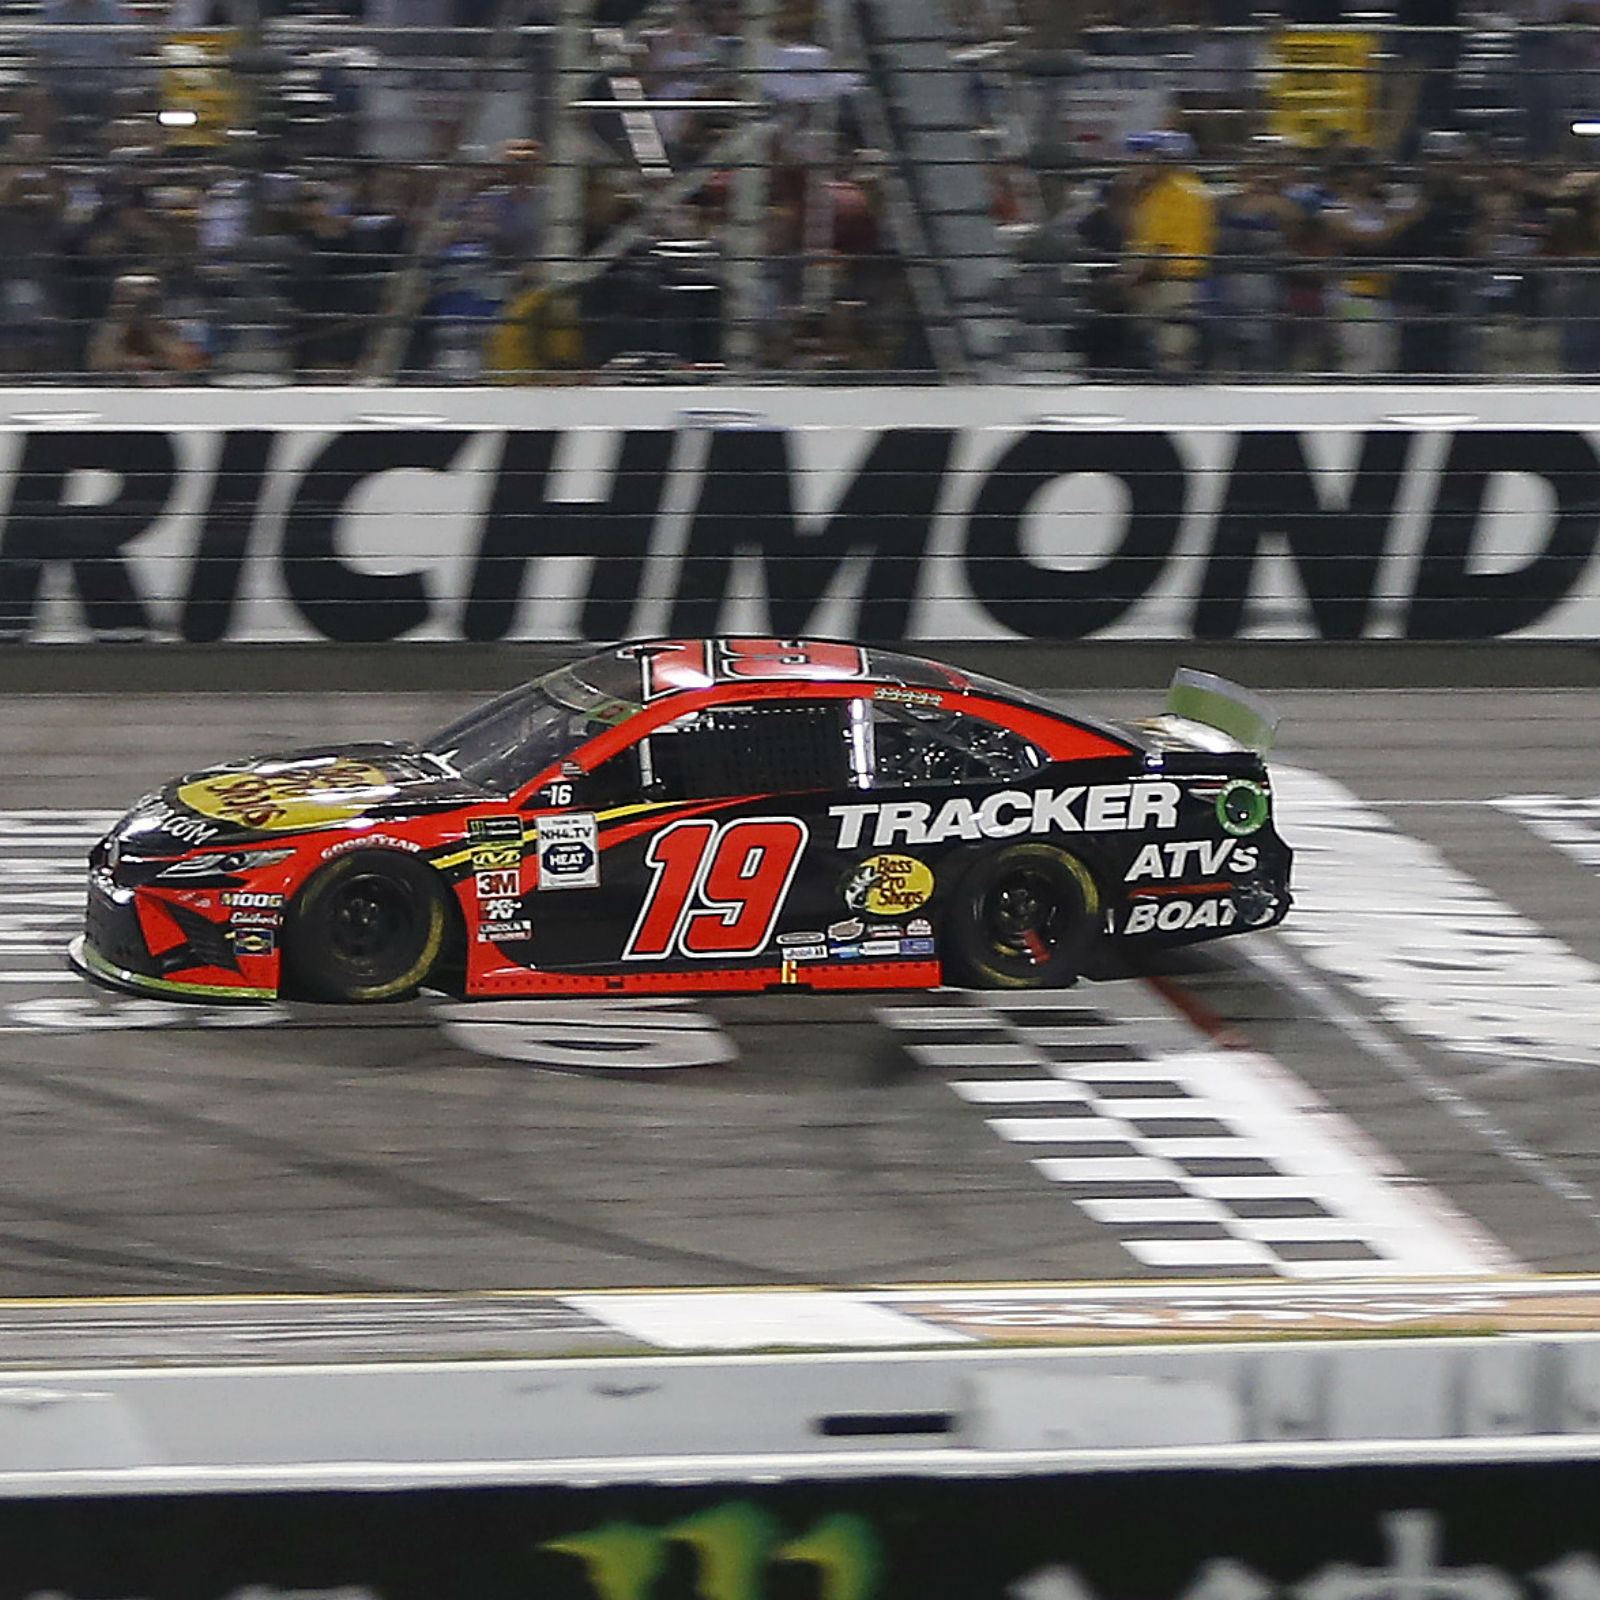 Richmond nascar betting odds how to use free bets on paddy power app